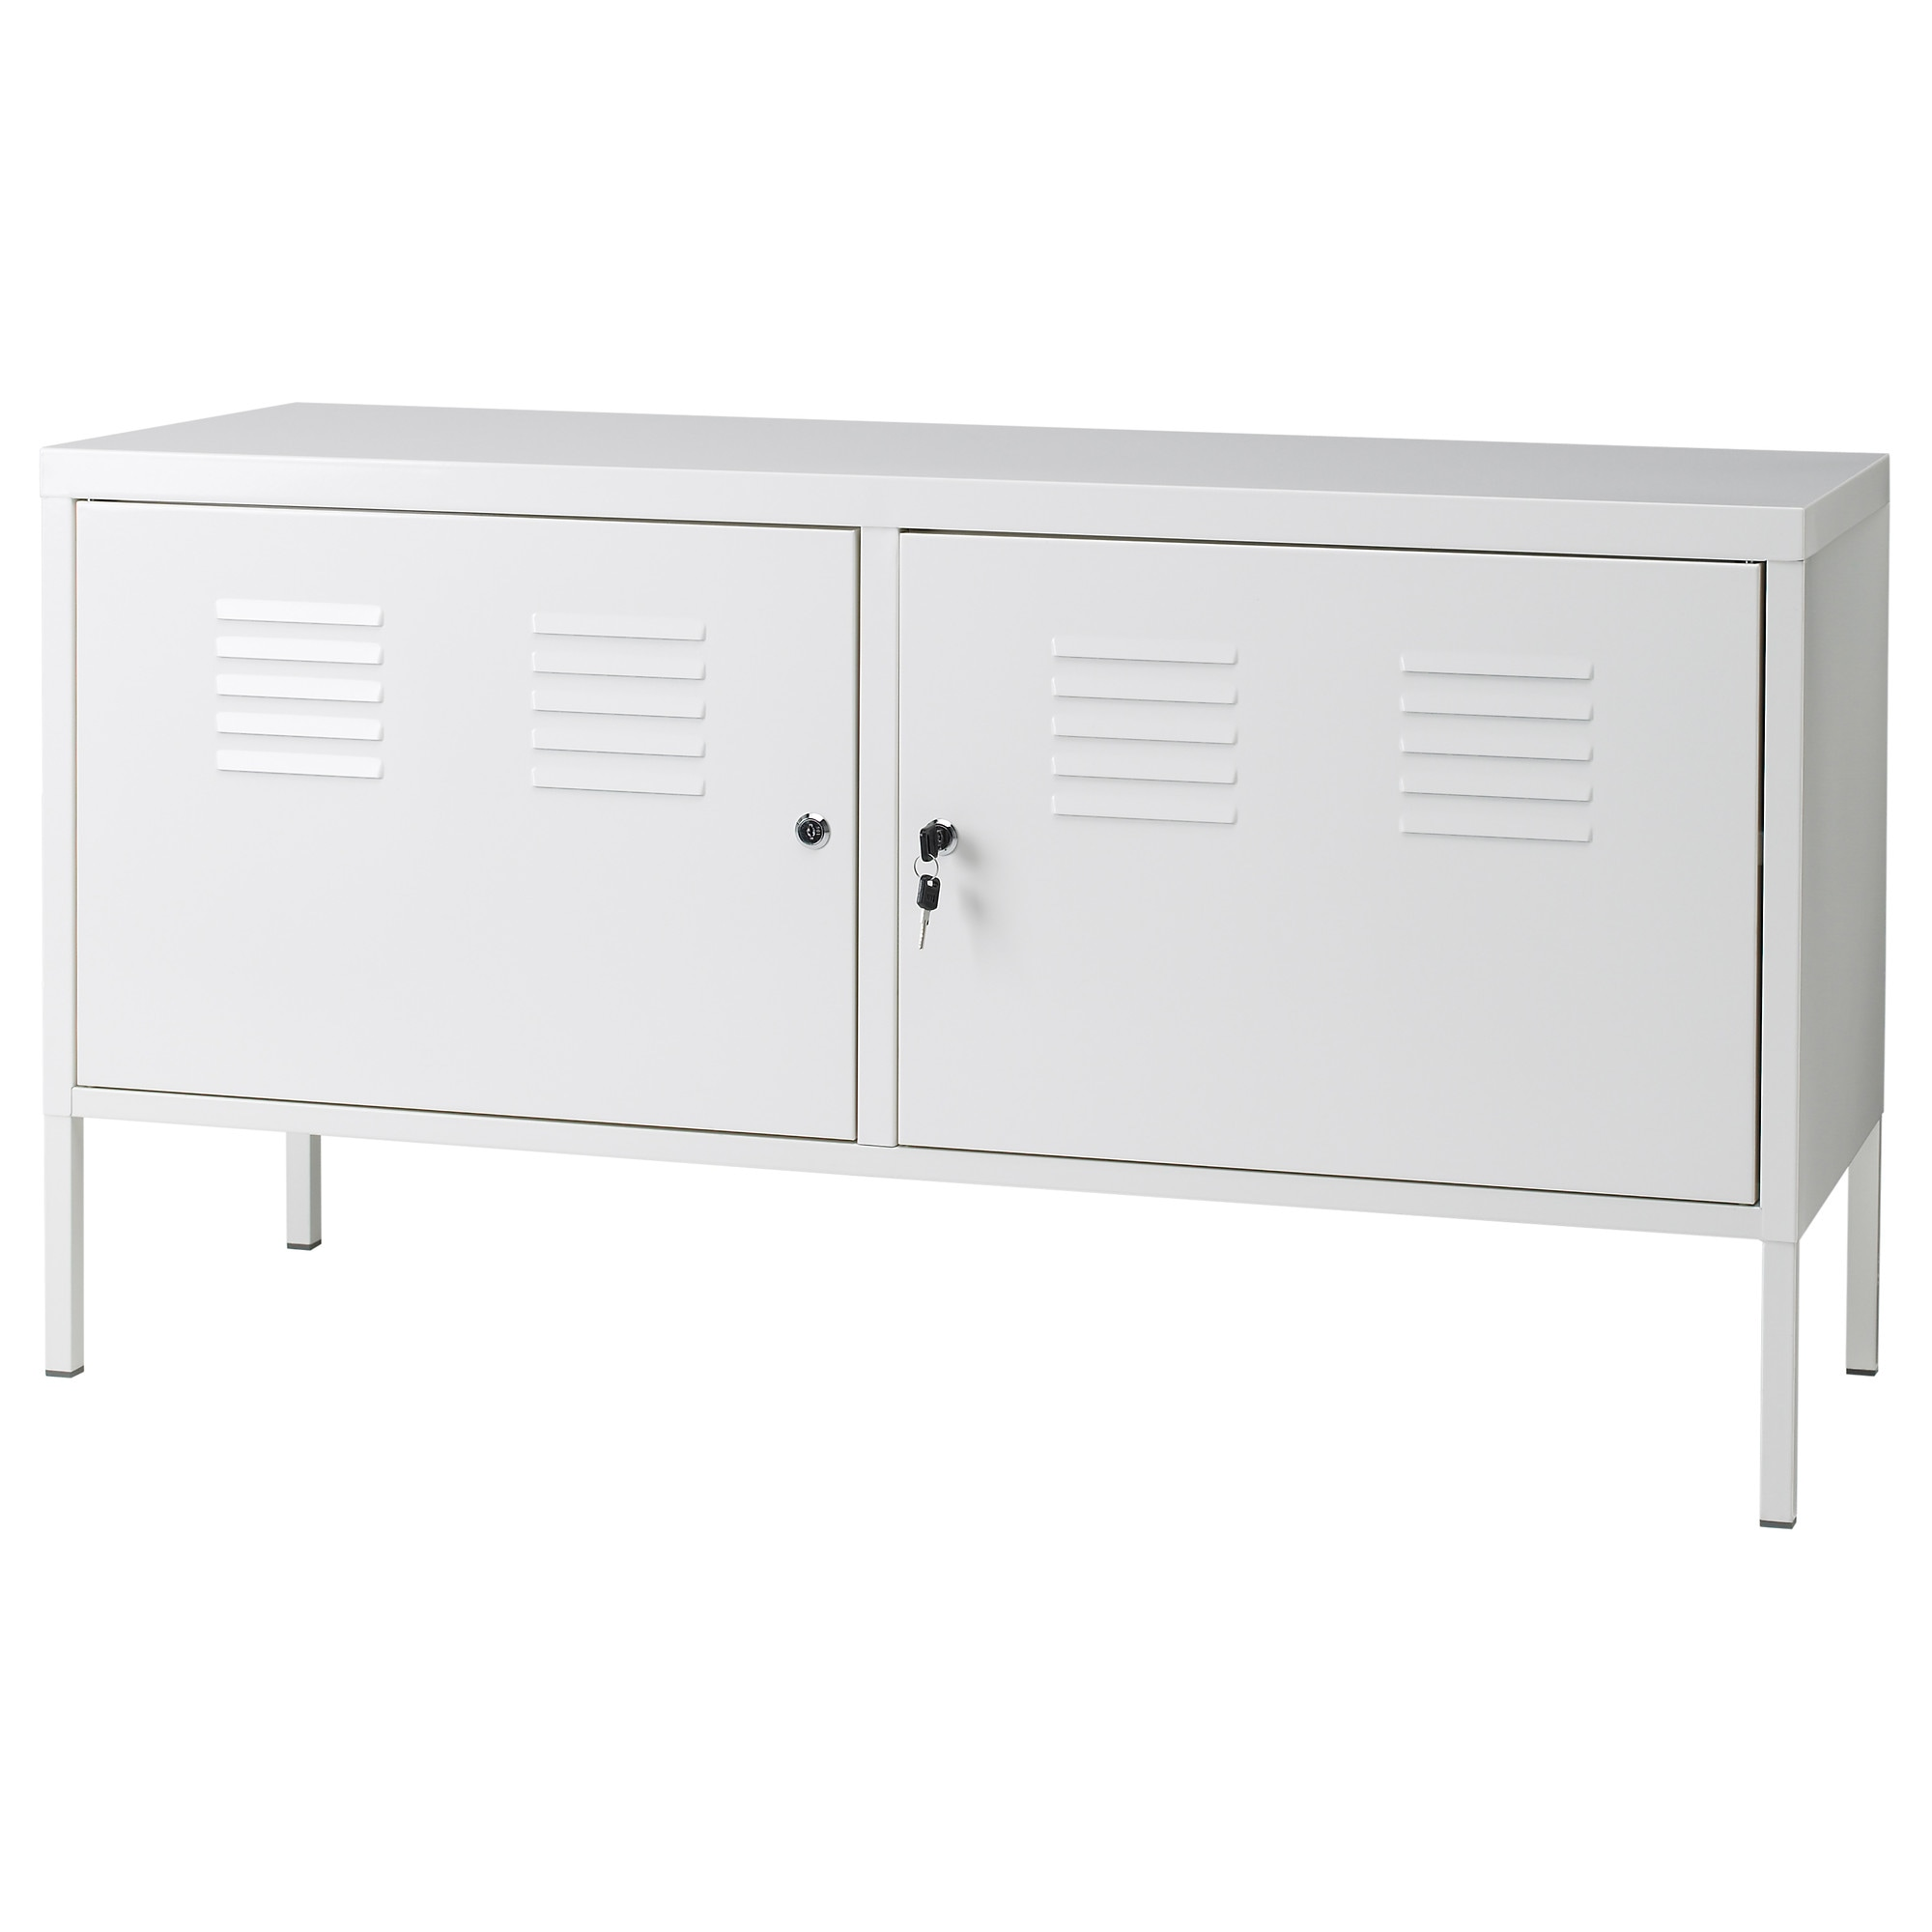 IKEA PS Cabinet - white - IKEA